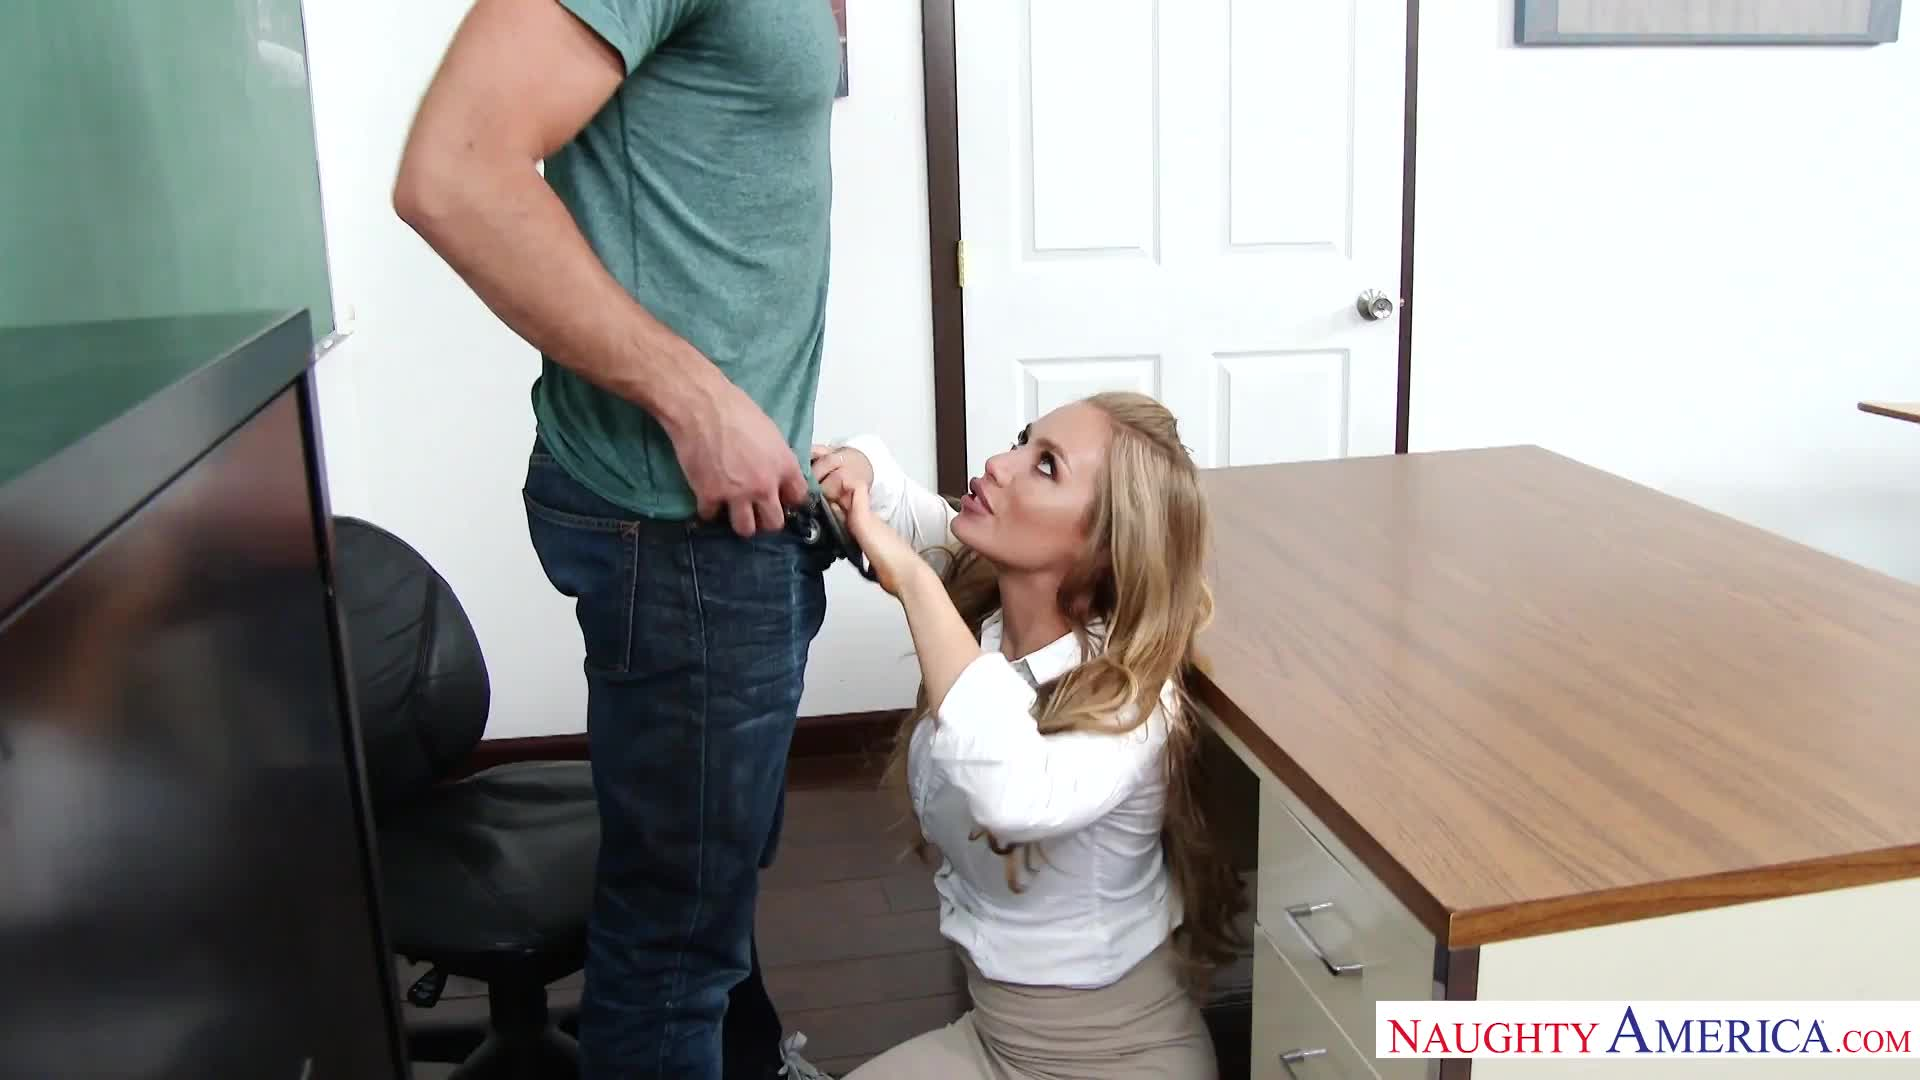 Professor Aniston blows a student after class